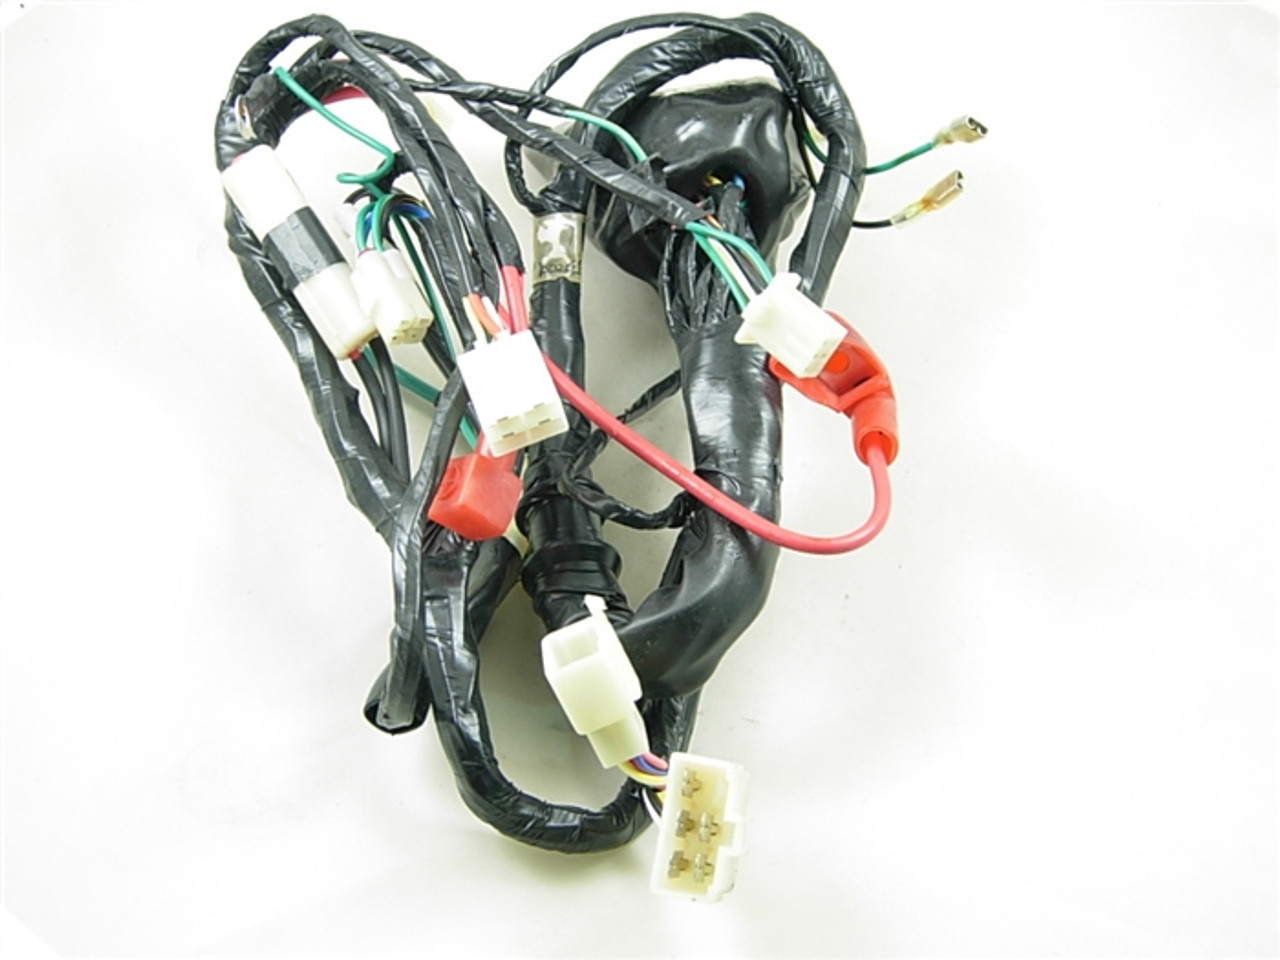 MAIN WIRE HARNESS 11303-A73-7